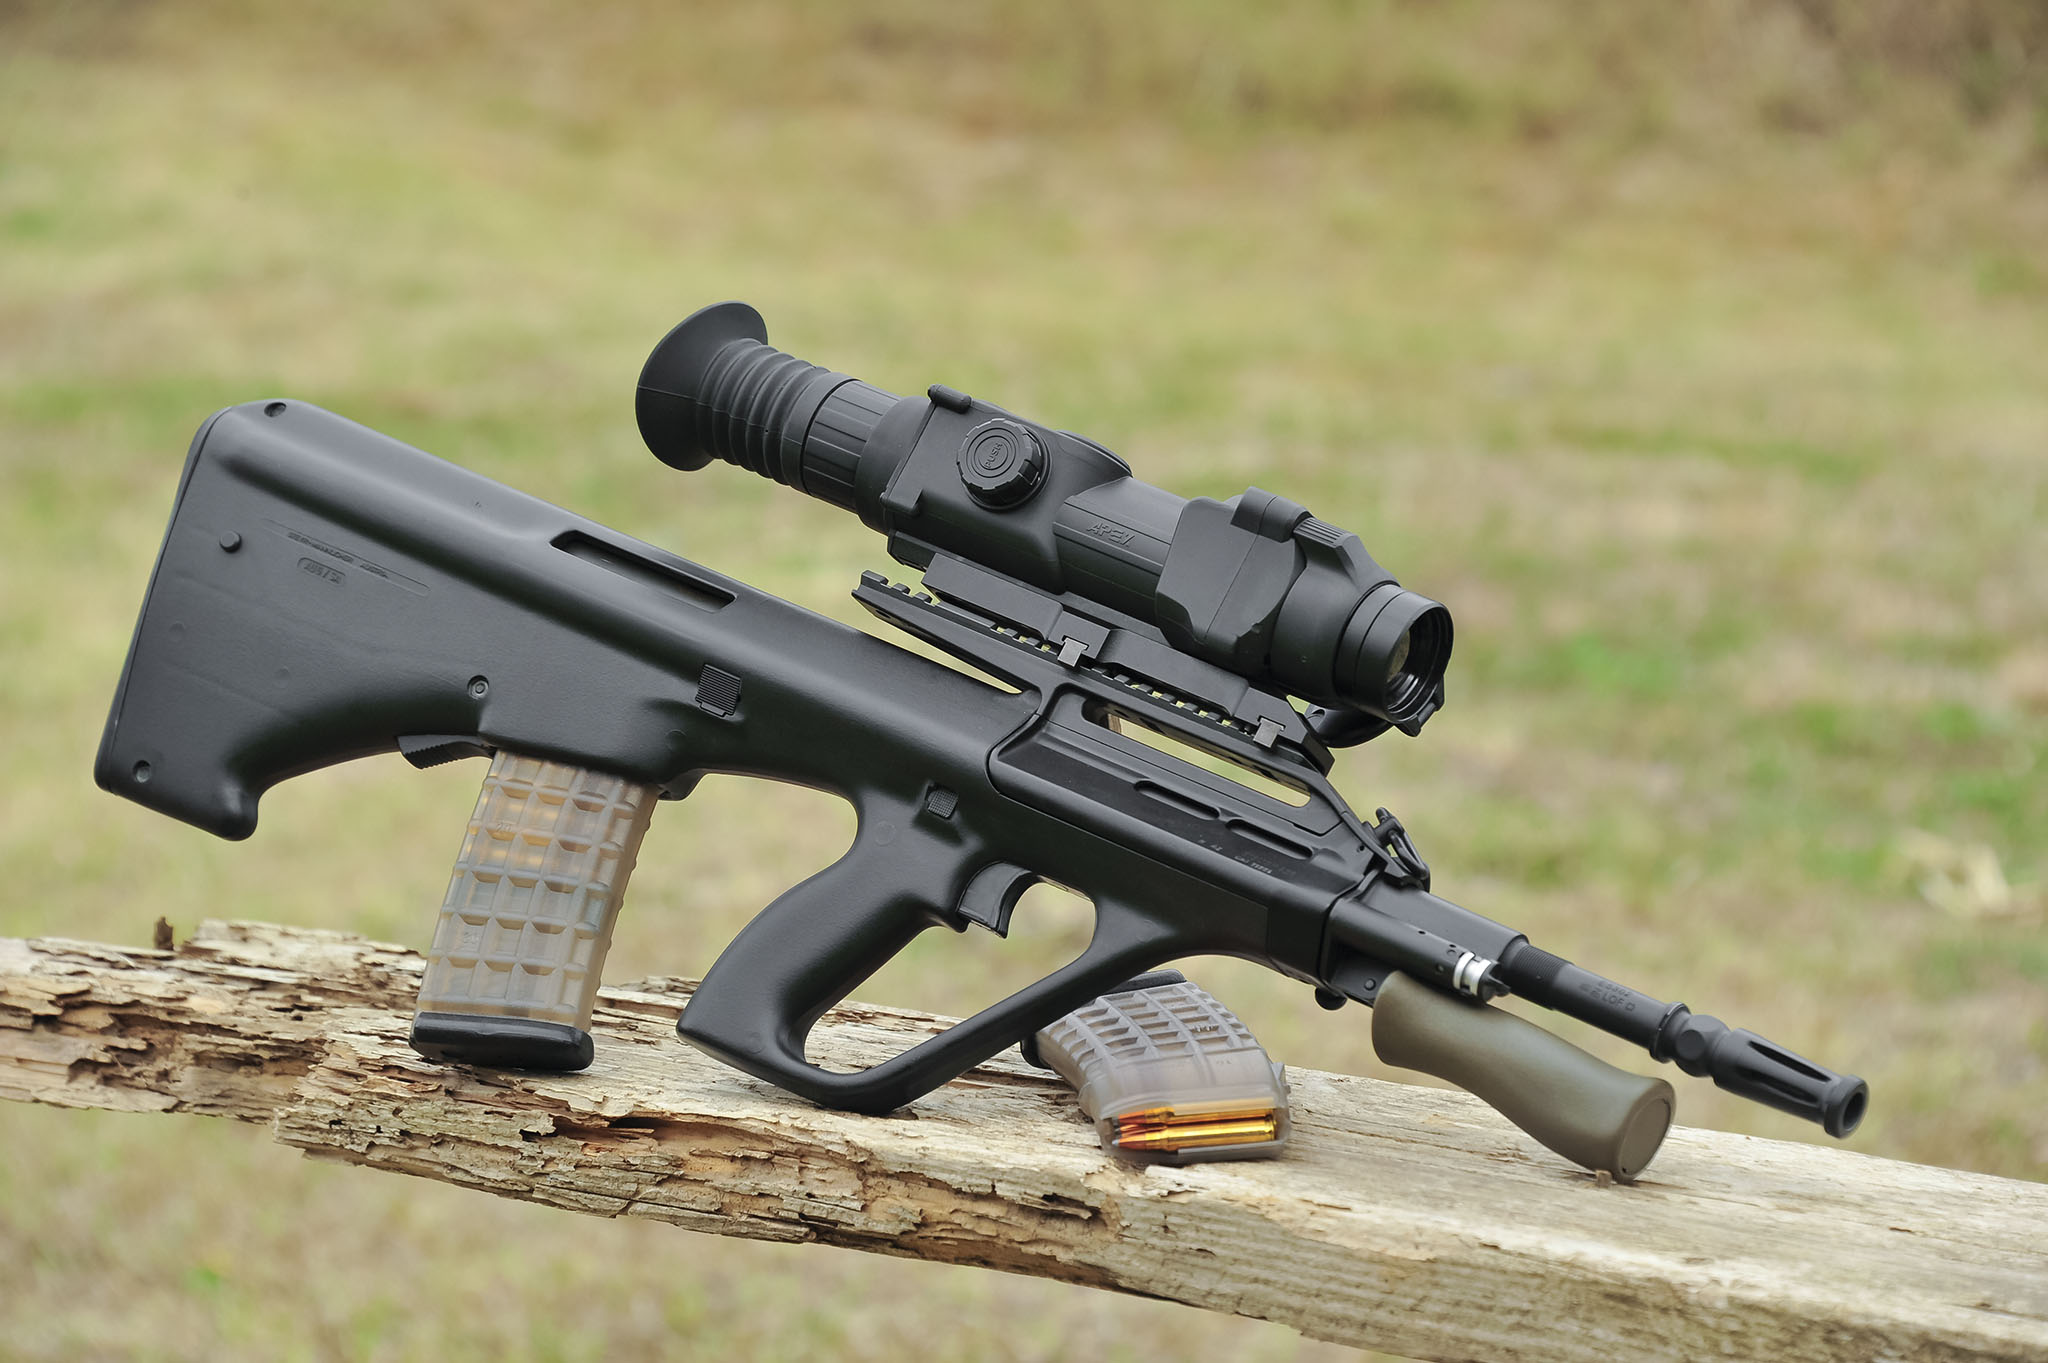 Pulsar Apex XD38 riflescope